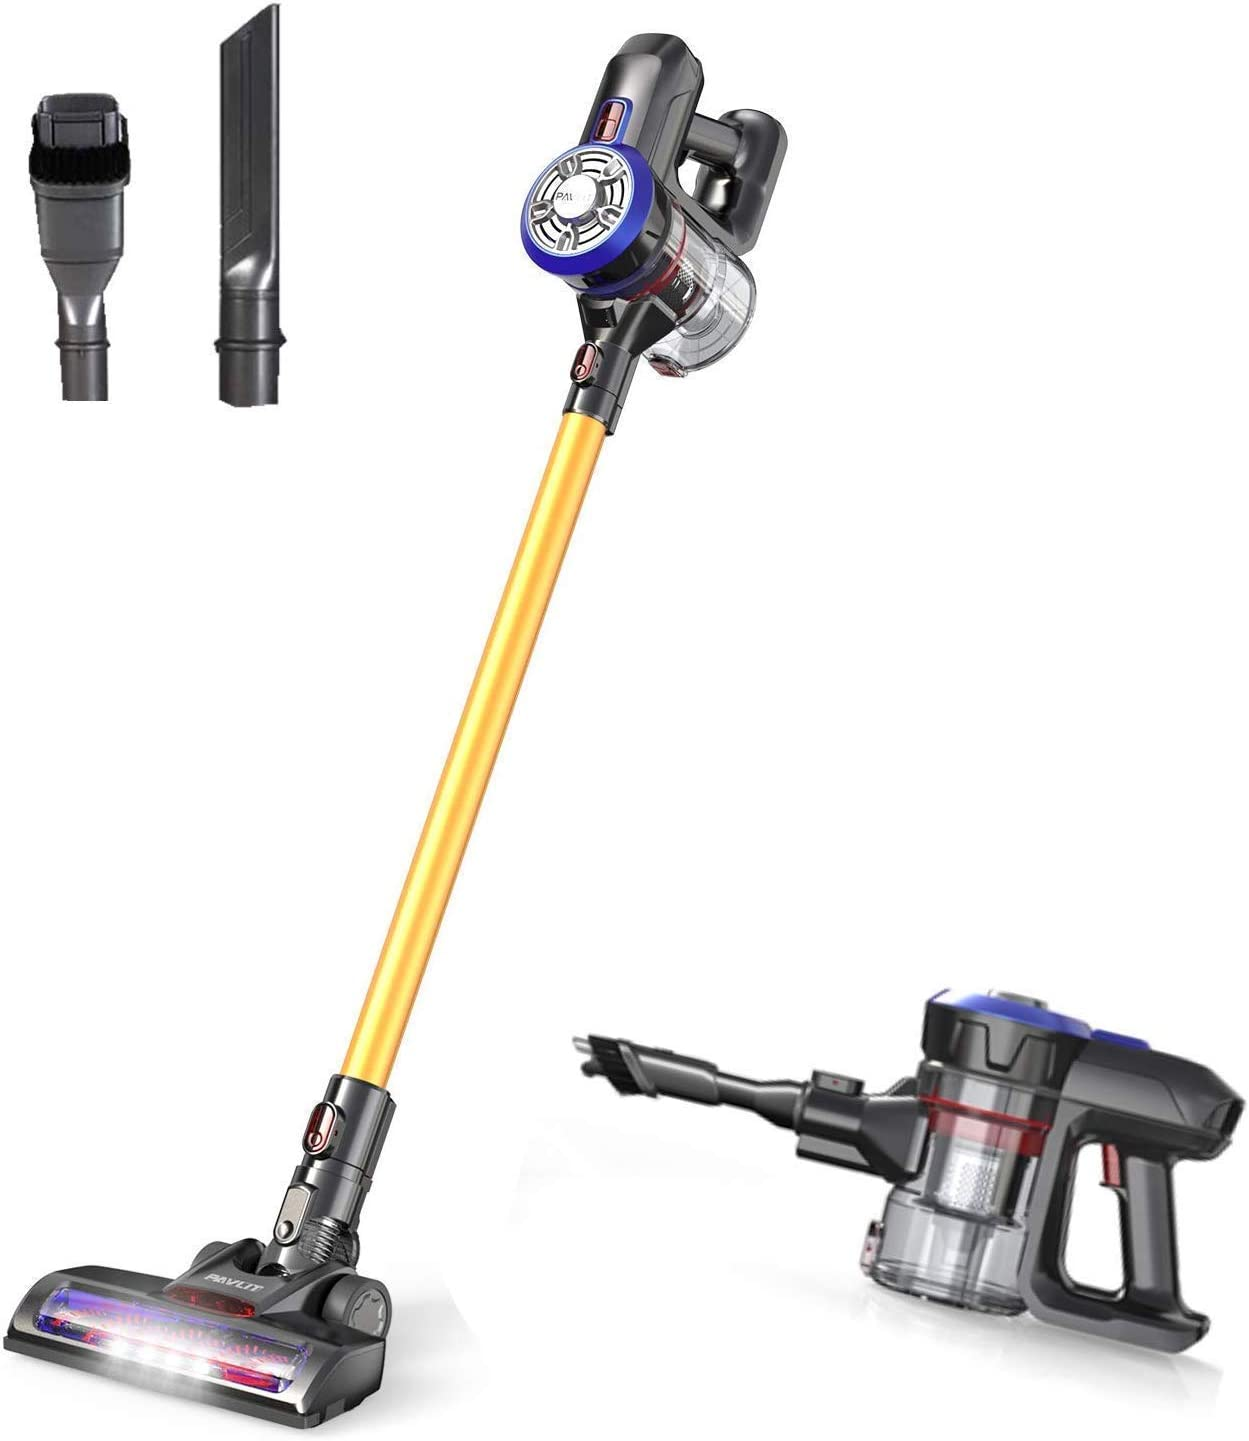 PAVLIT Cordless Vacuum Cleaner 12000pa Powerful Suction, 4 in 1 Handheld Stick Vacuum Cleaners, Lightweight and Rechargeable Battery, LED Headlights